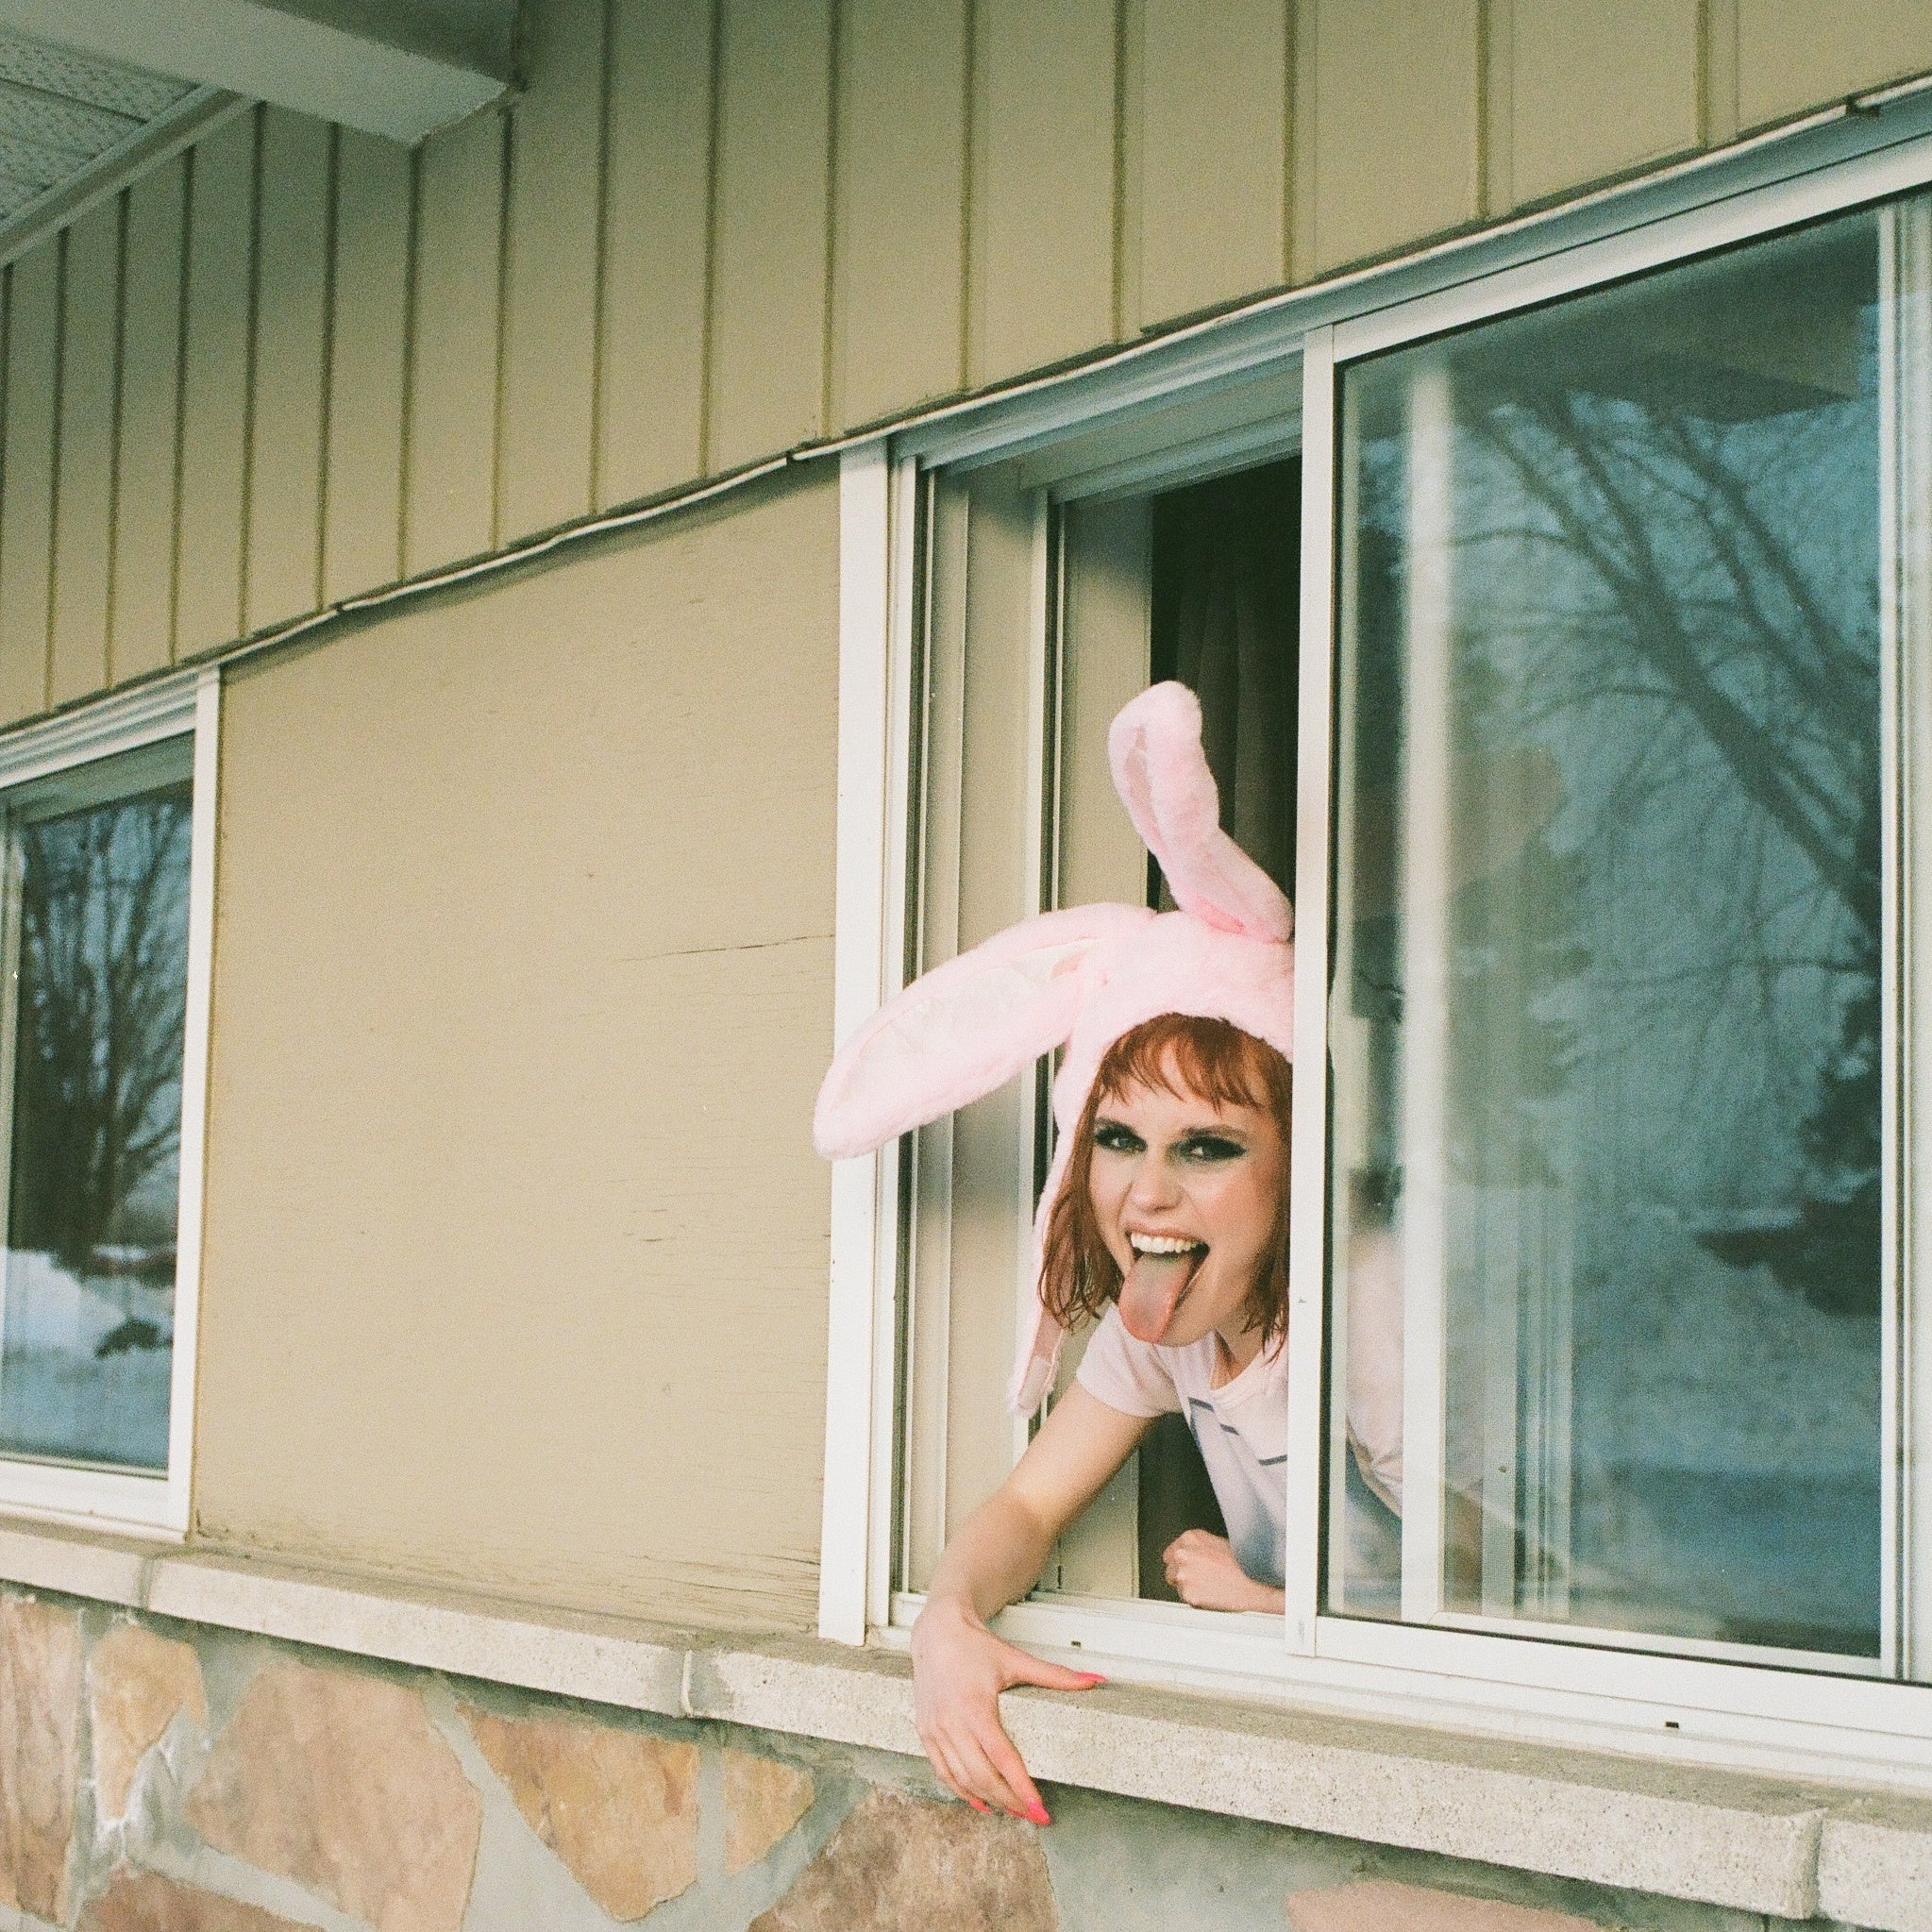 Madelline montreal artist wearing bunny ears out of a motel window, being rebellious